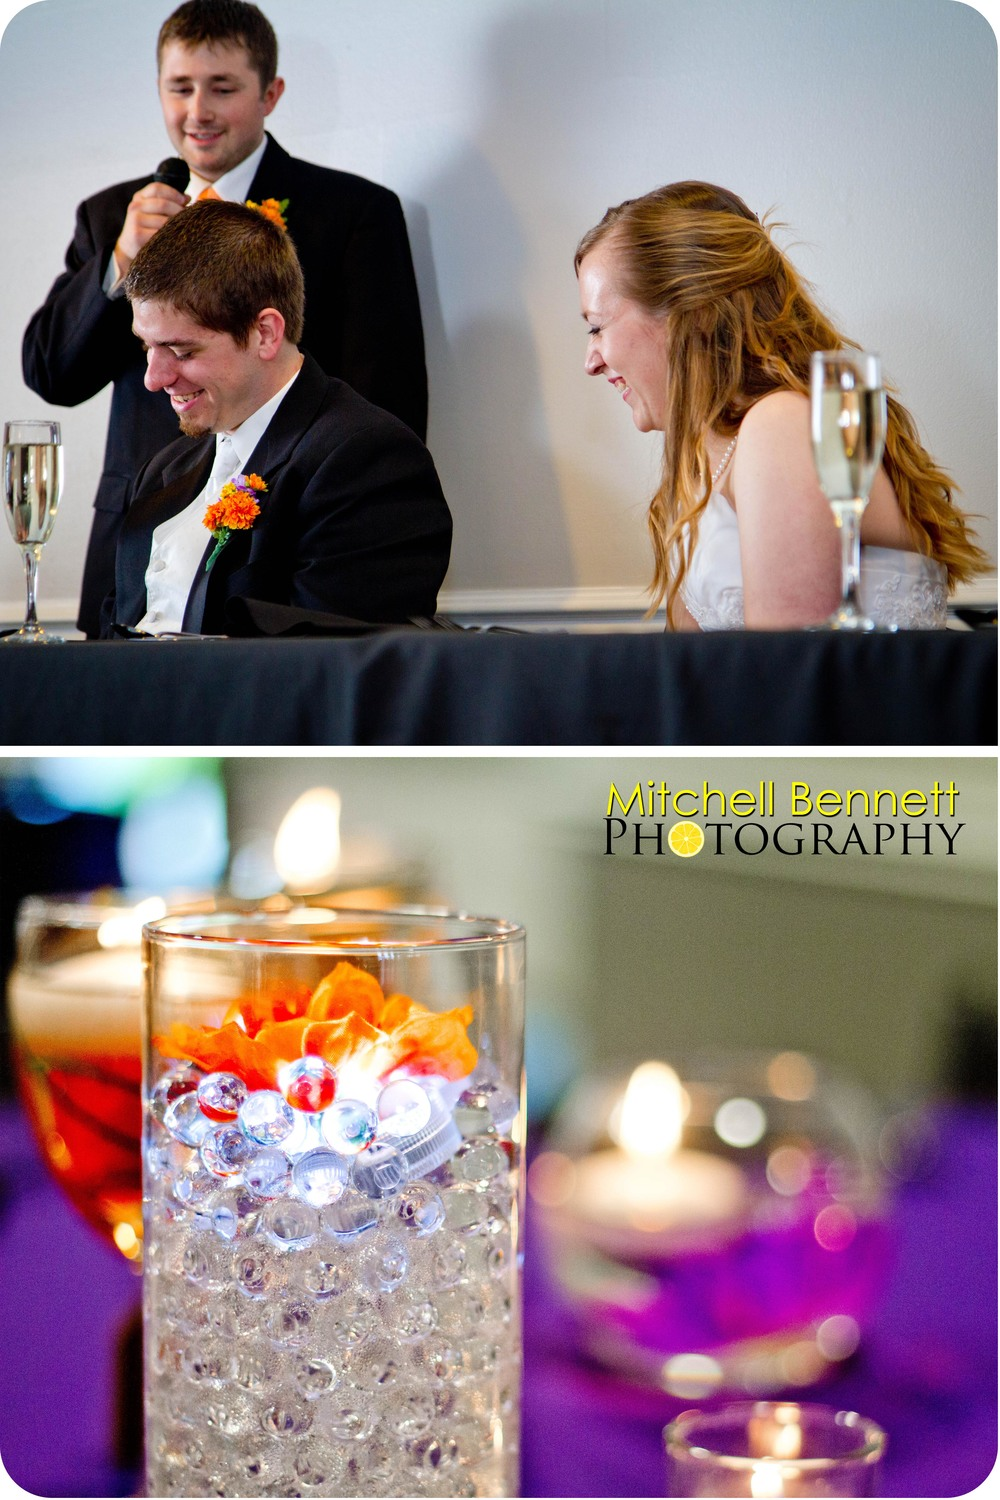 The reception was beautifully decorated, and had a light-hearted, personal atmosphere.